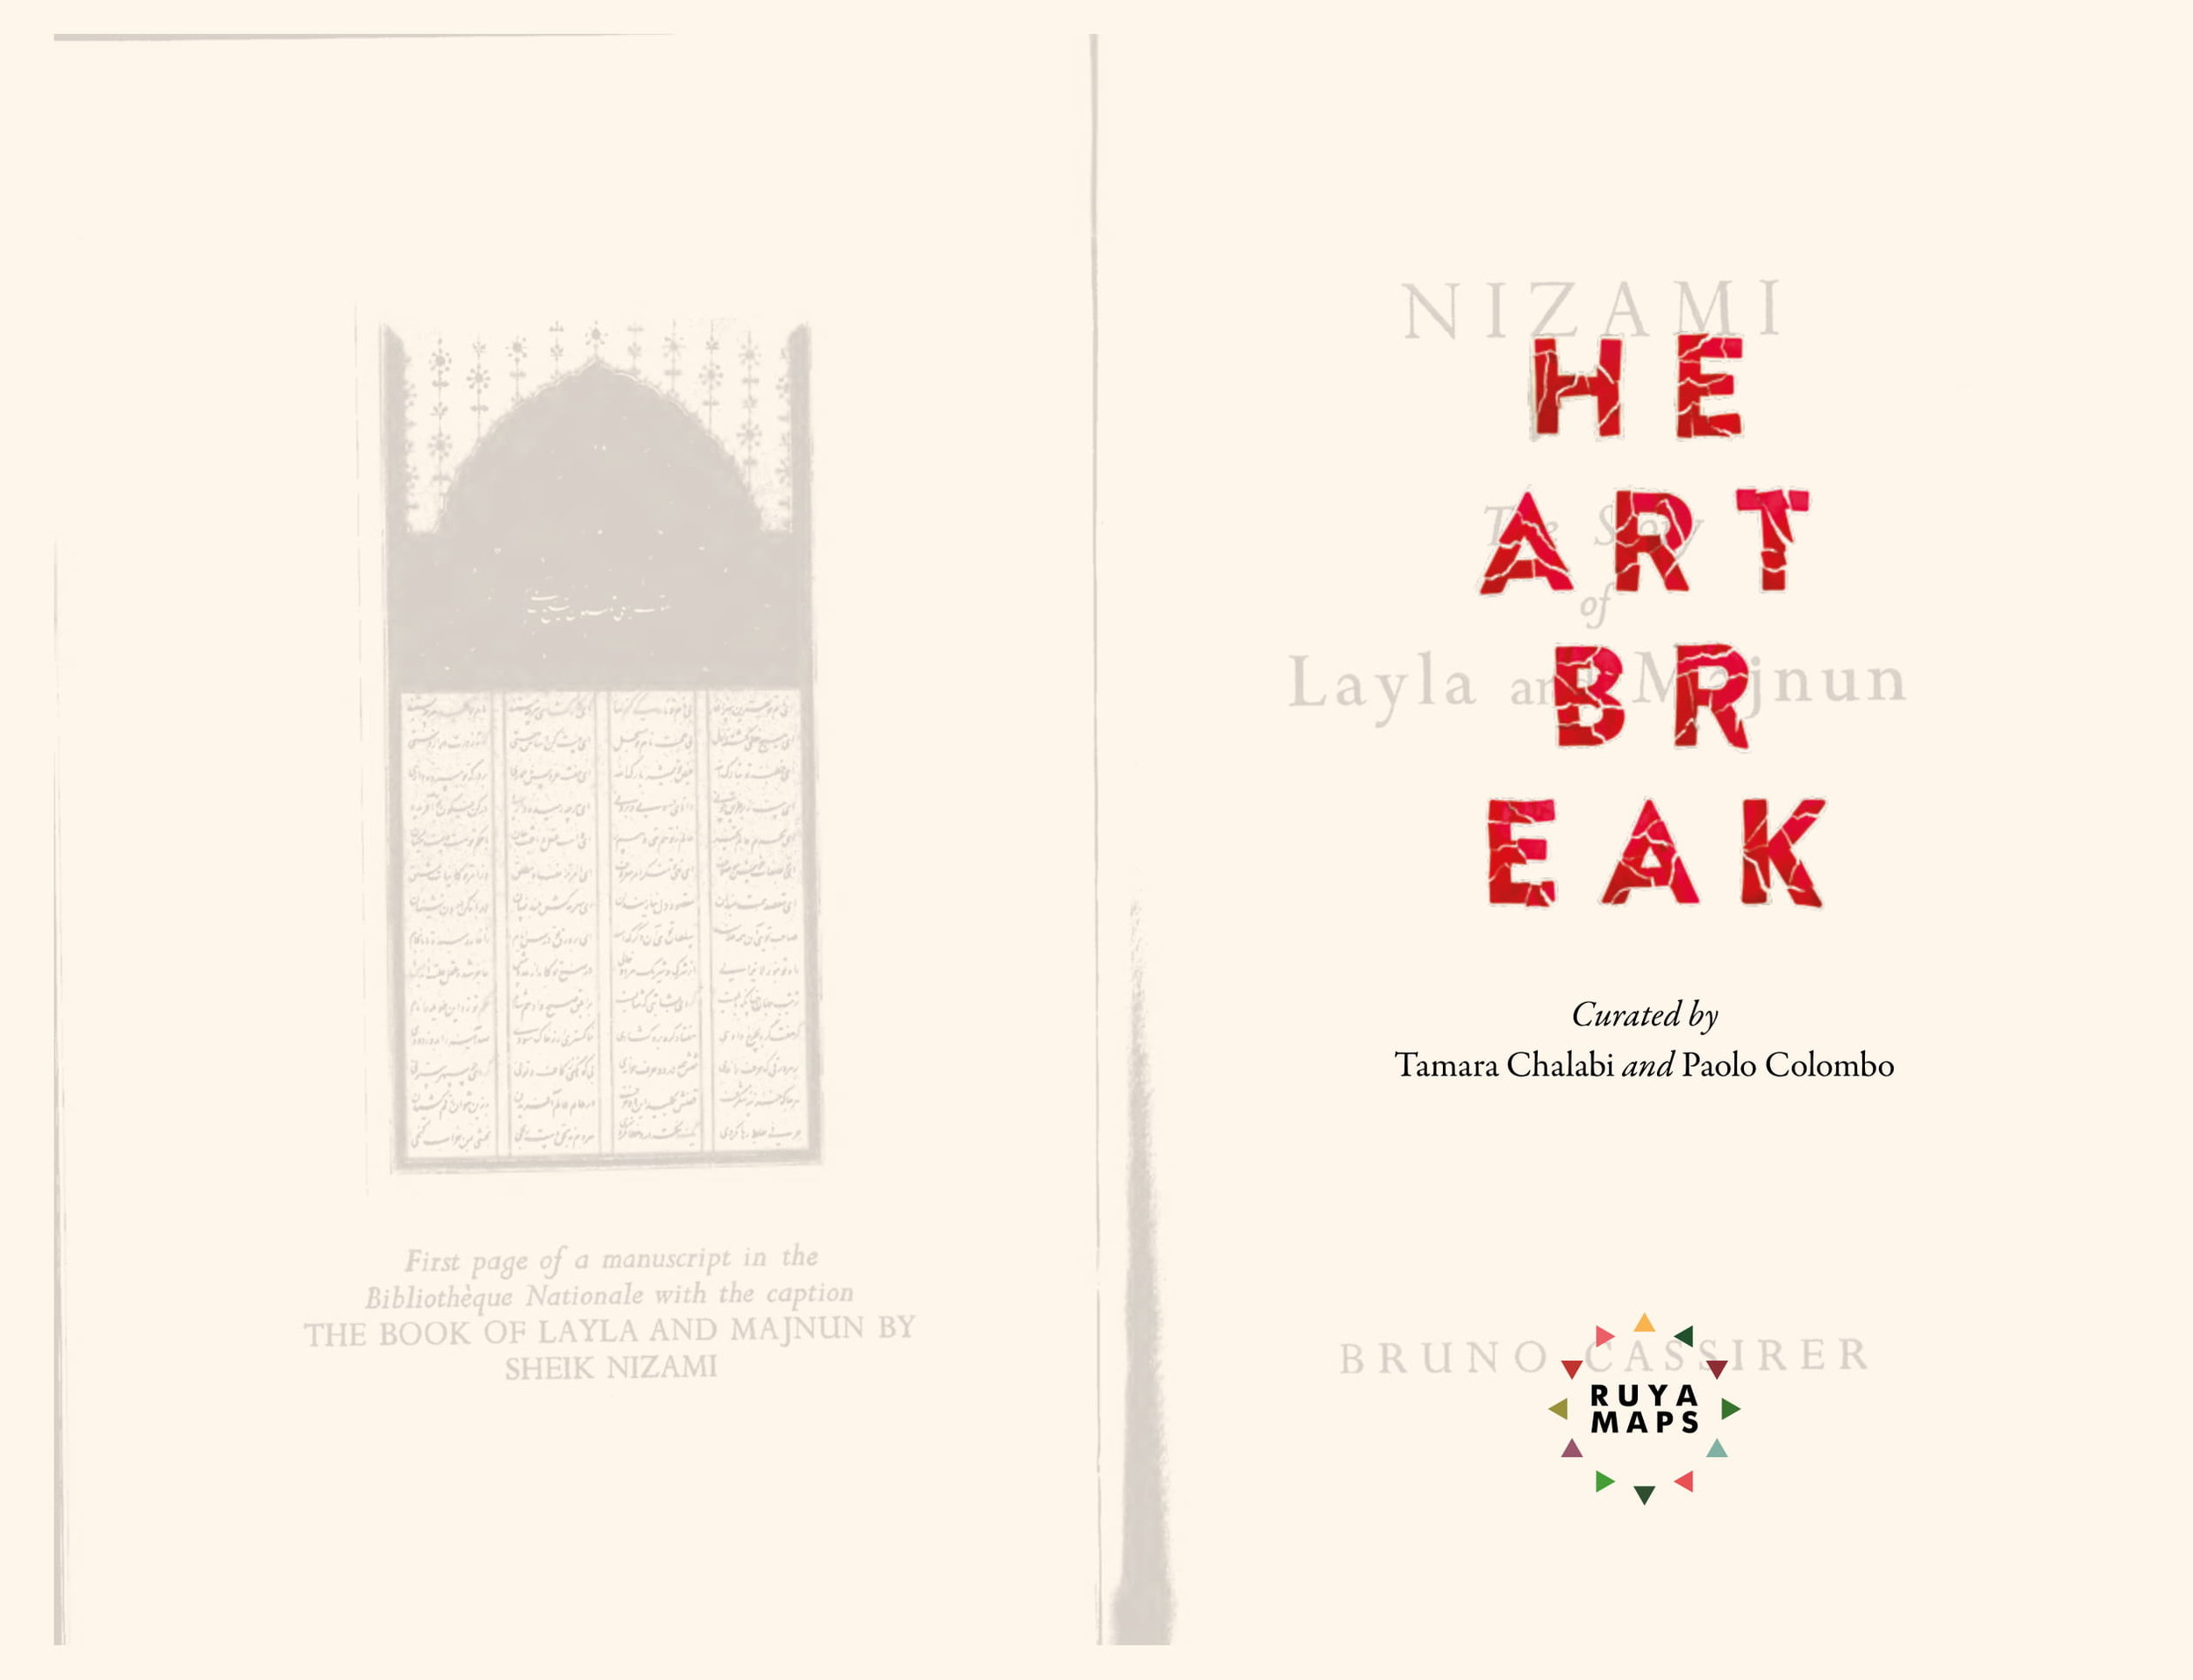 Title: HEARTBREAK  Format: Softback, Pages: 222, Illustrations: 154 images, Dimensions: 160 x 245 mm  Printed in Italy by Conti Tipocolor S.p.A., Calenzano (Florence) April 2019. ISBN: 9781645706731.